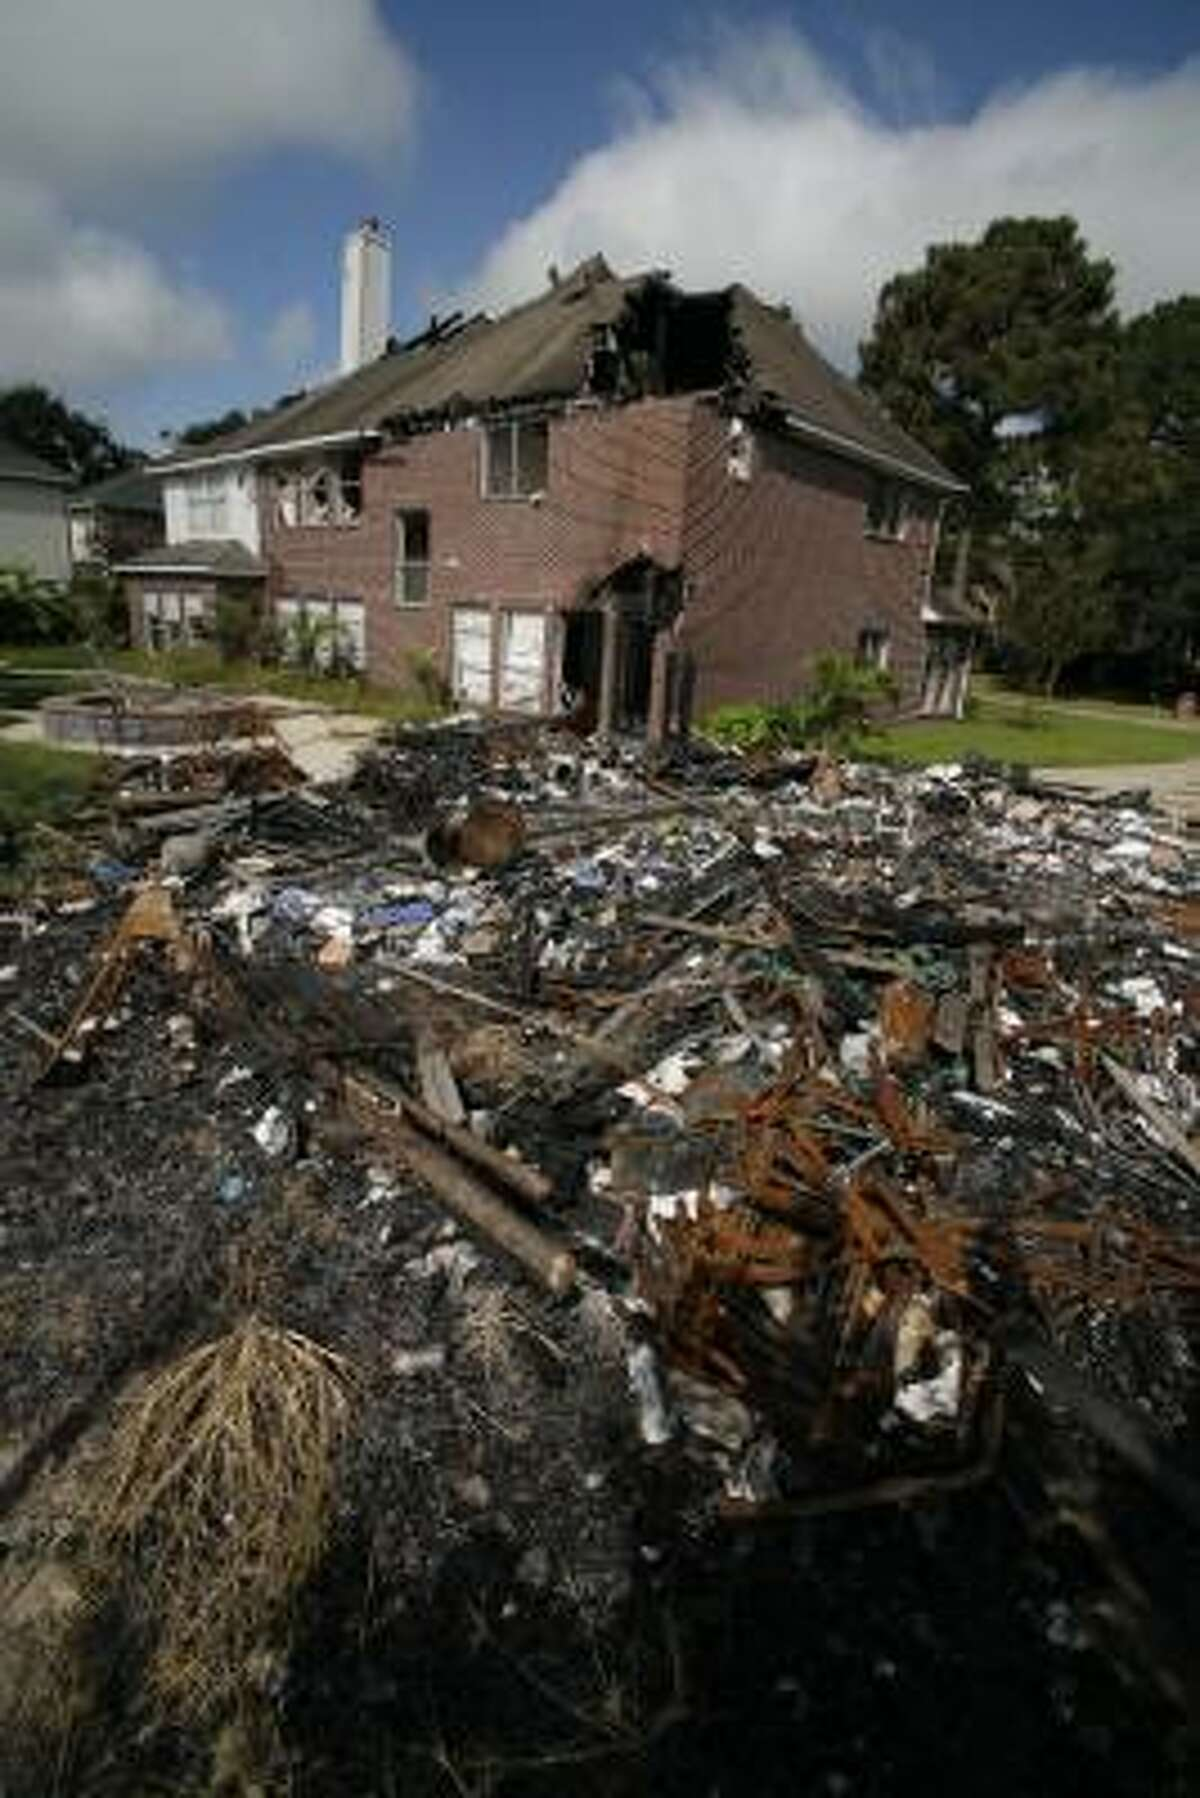 The house of Texas Supreme Court Justice David Medina, destroyed in a fire last year.